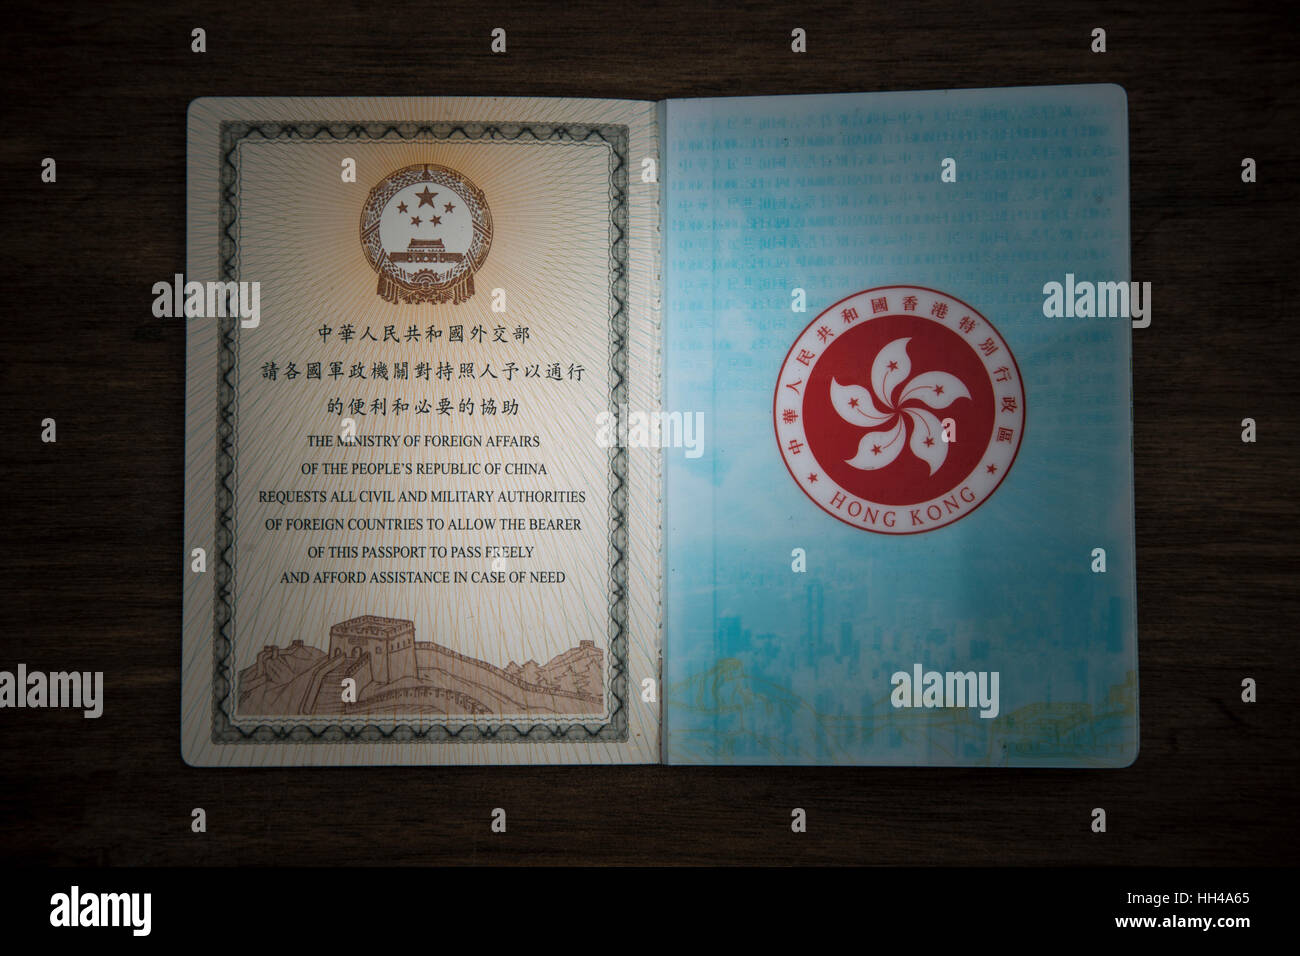 Hong Kong. 16th Jan, 2017. The picture shows the inside pages of the Hong Kong (HKSAR) passport on the desk. Article - Stock Image